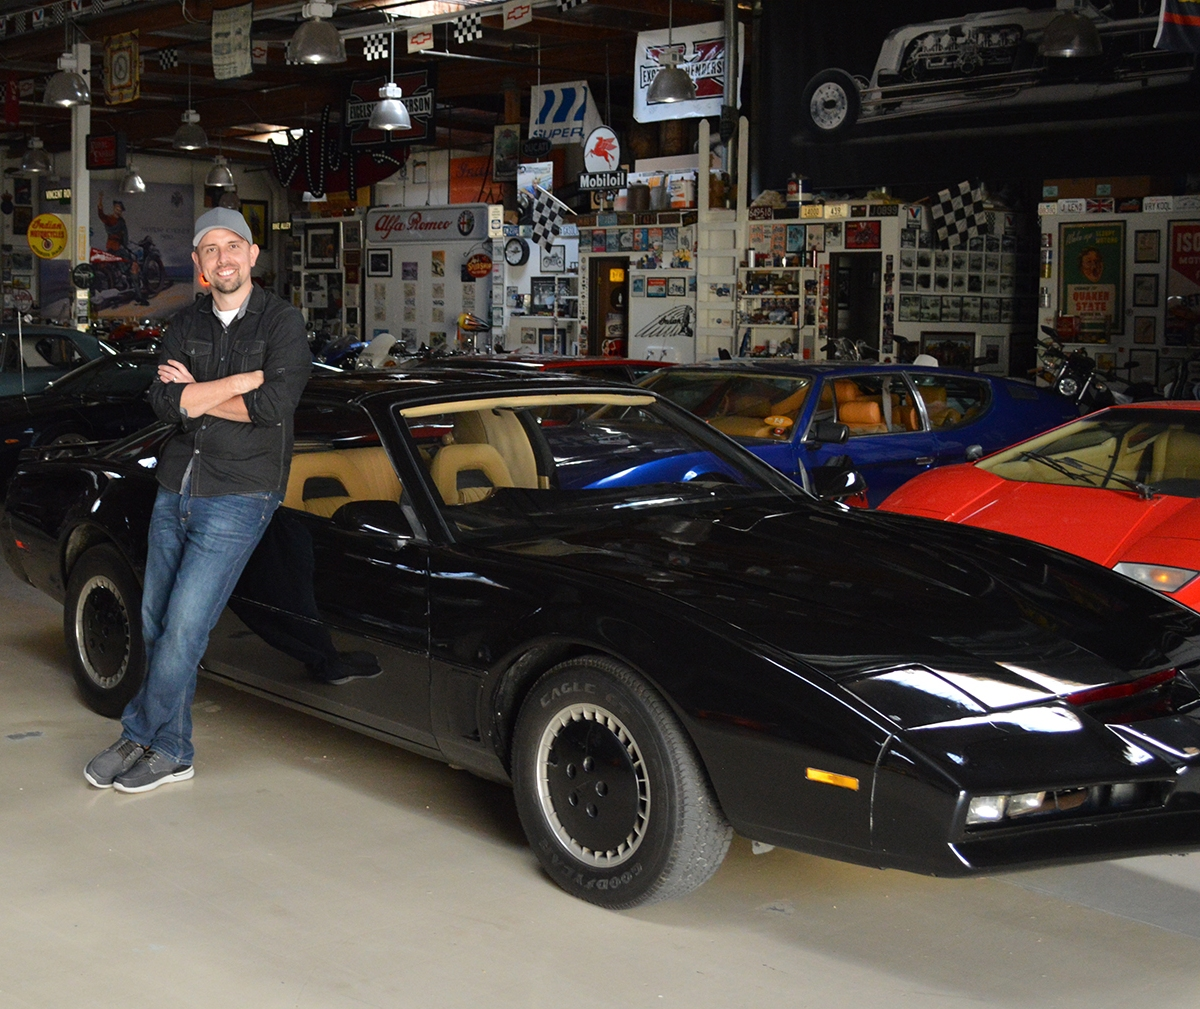 How 'Knight Rider' Made David Hasselhoff a Star Before